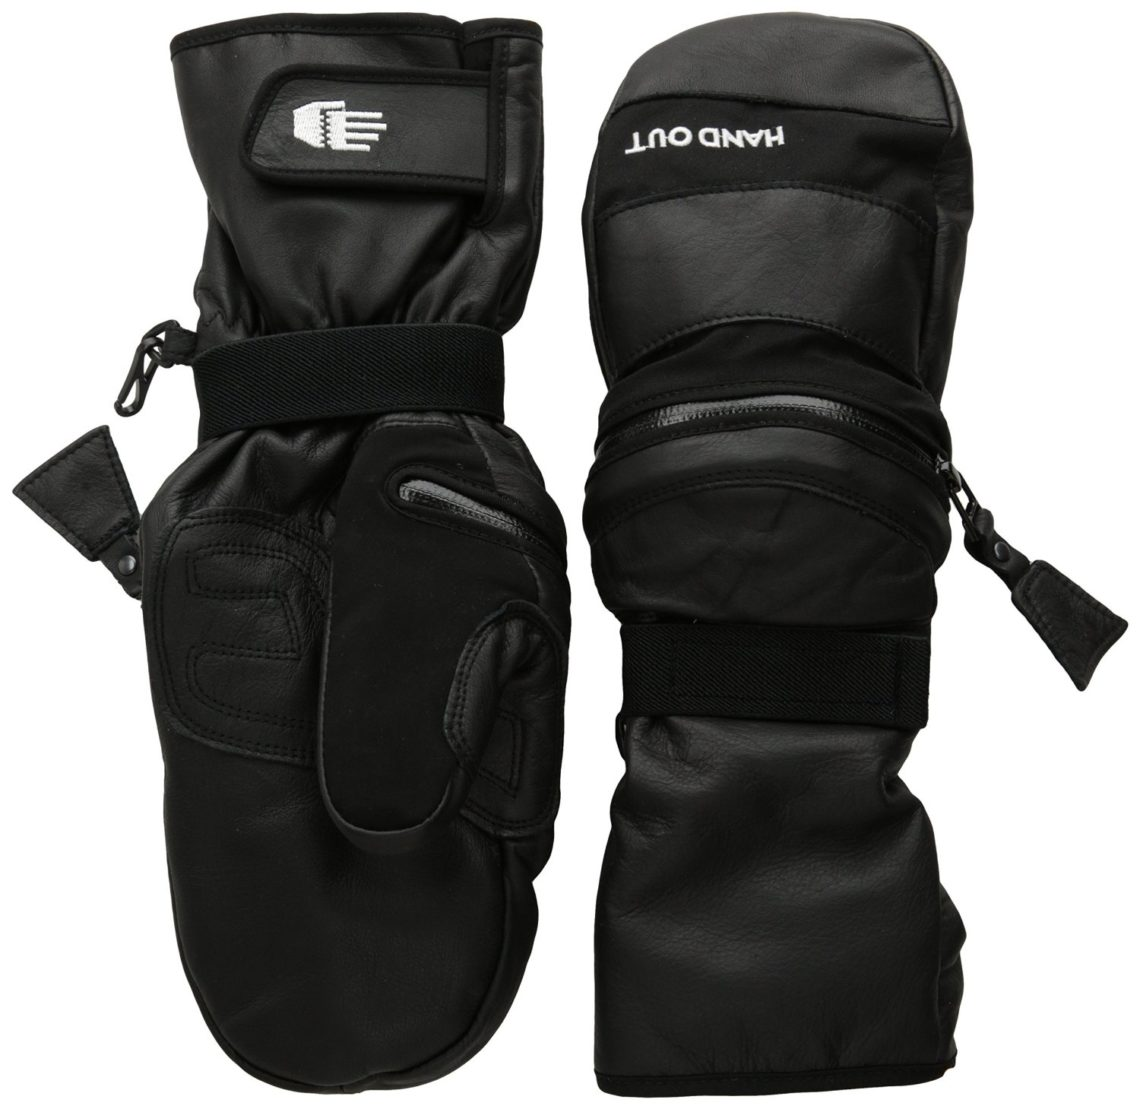 Osprey womens leather gloves - Dexterity Gloves Mittens Backcountry Mittens Leather Warm Dsc_0761